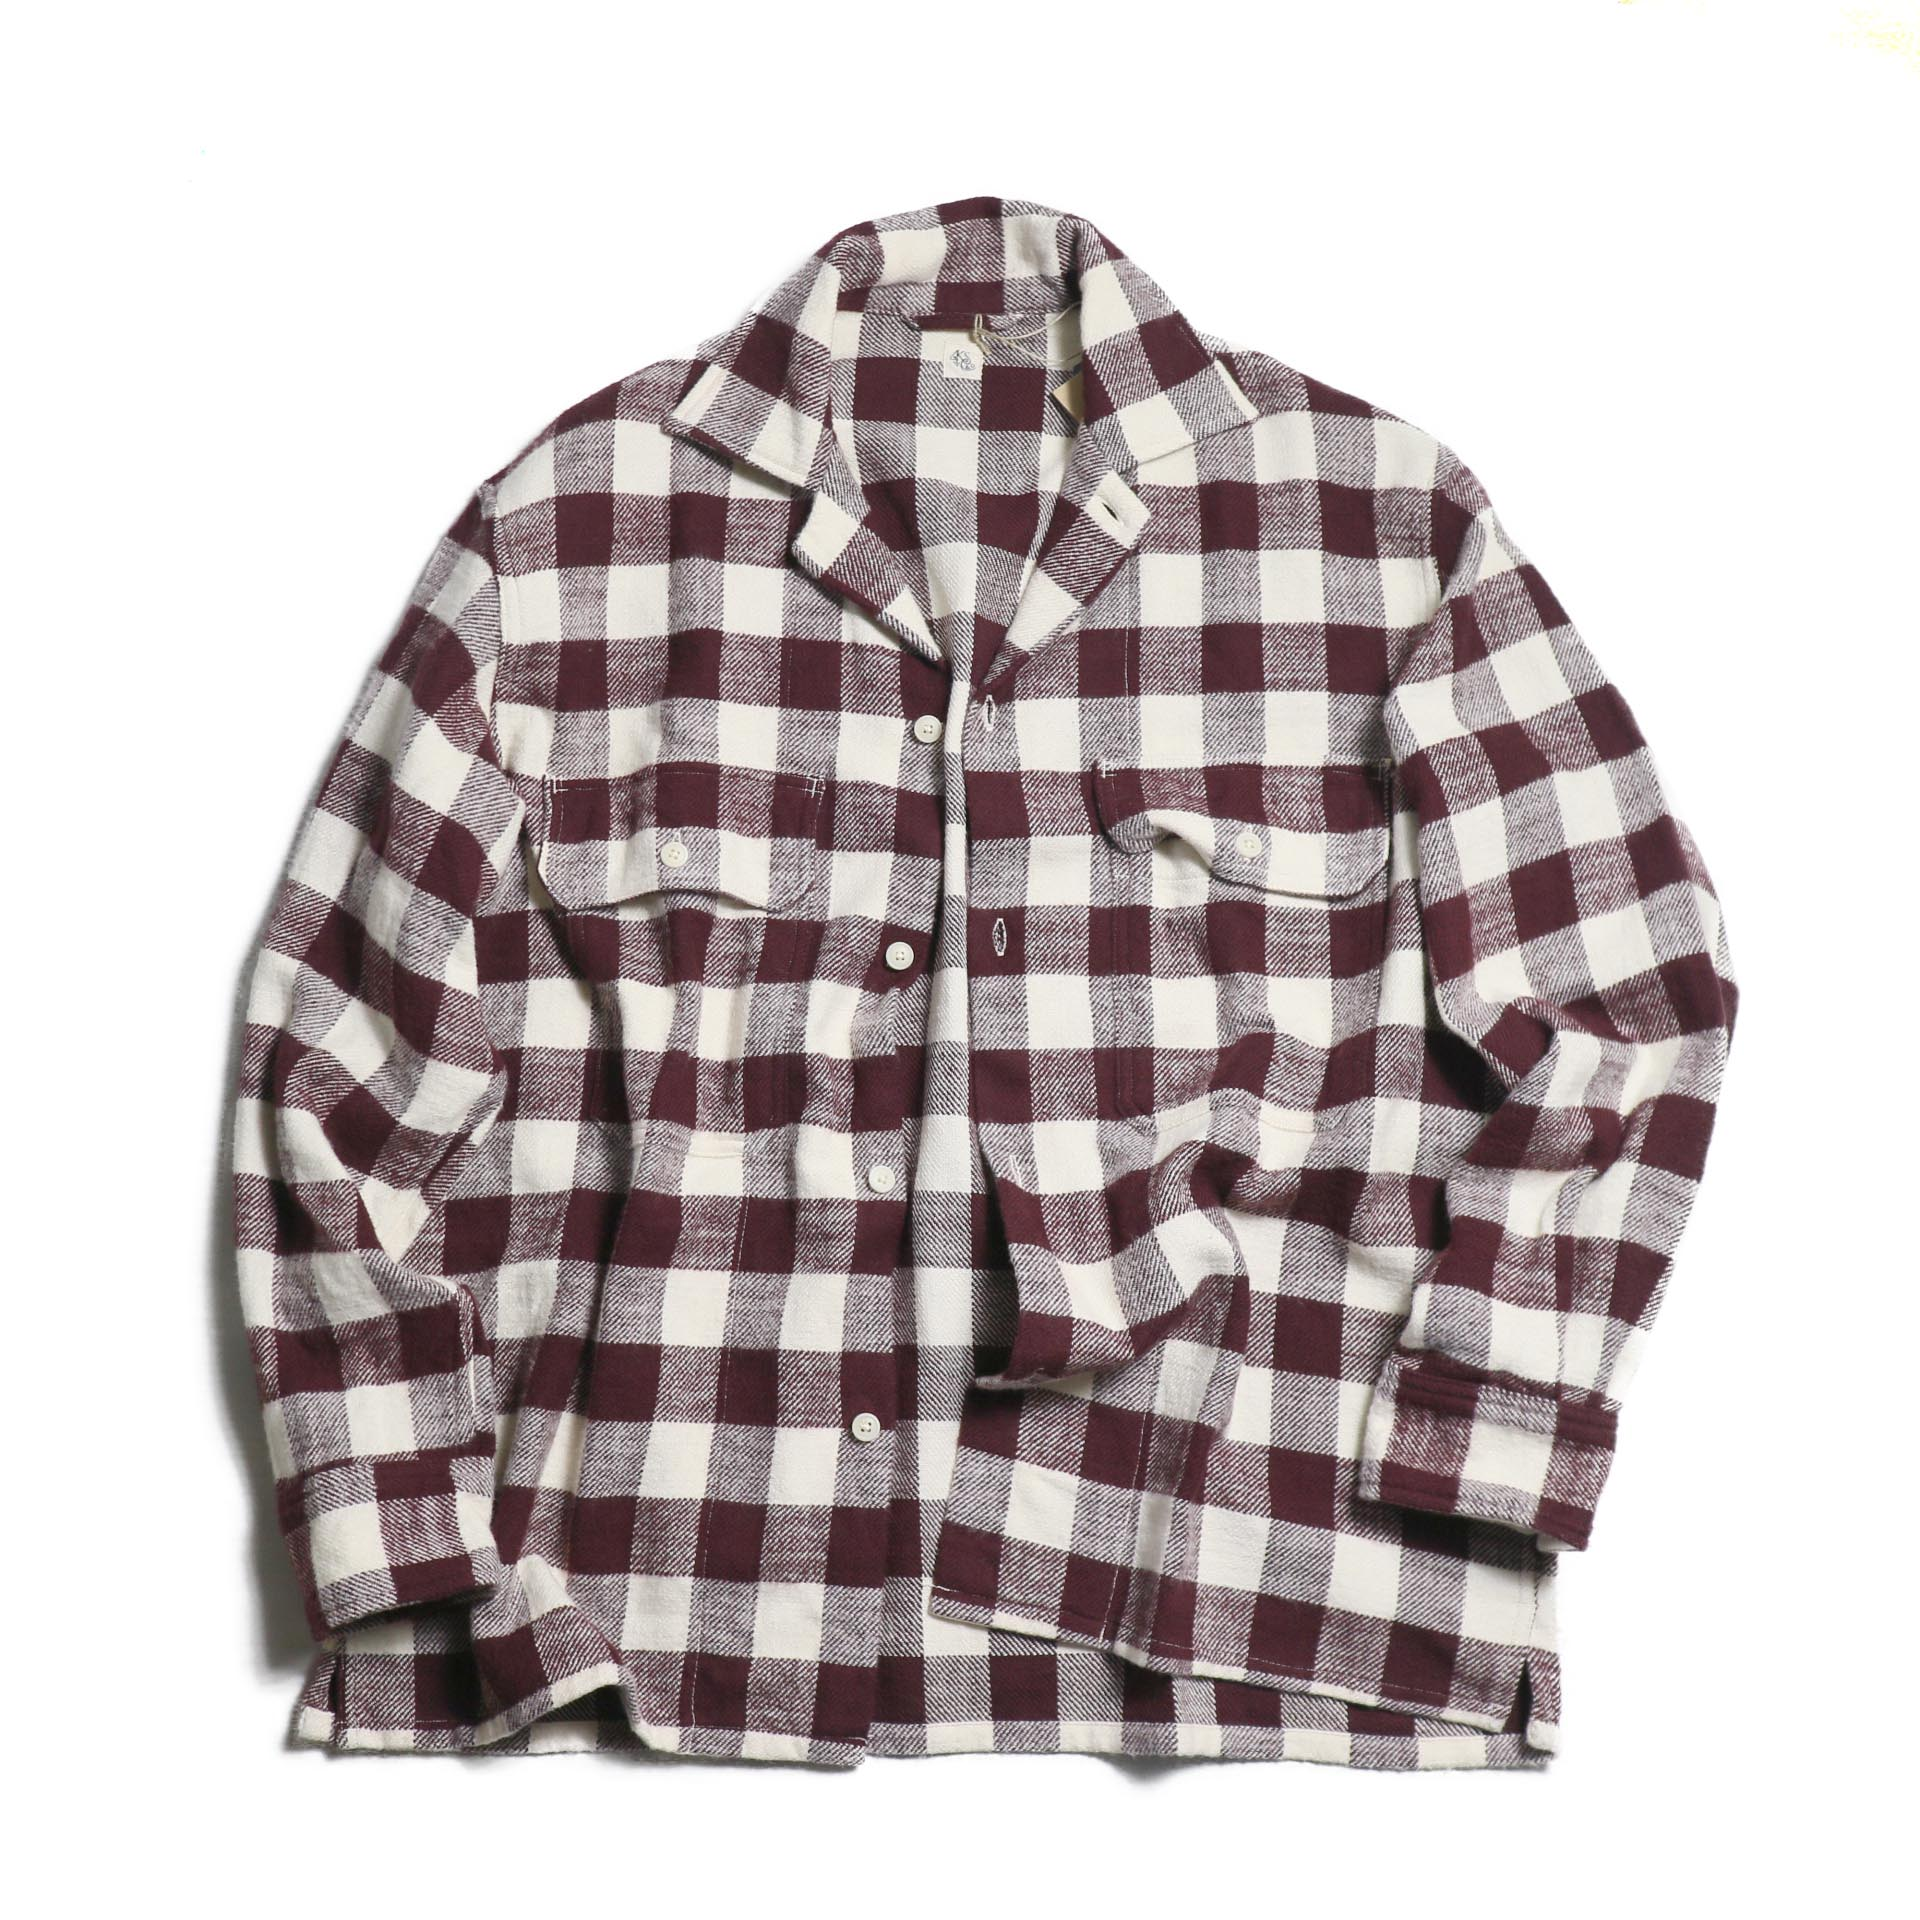 Kaptain Sunshine / Open Collar Shirt -BURGUNDY